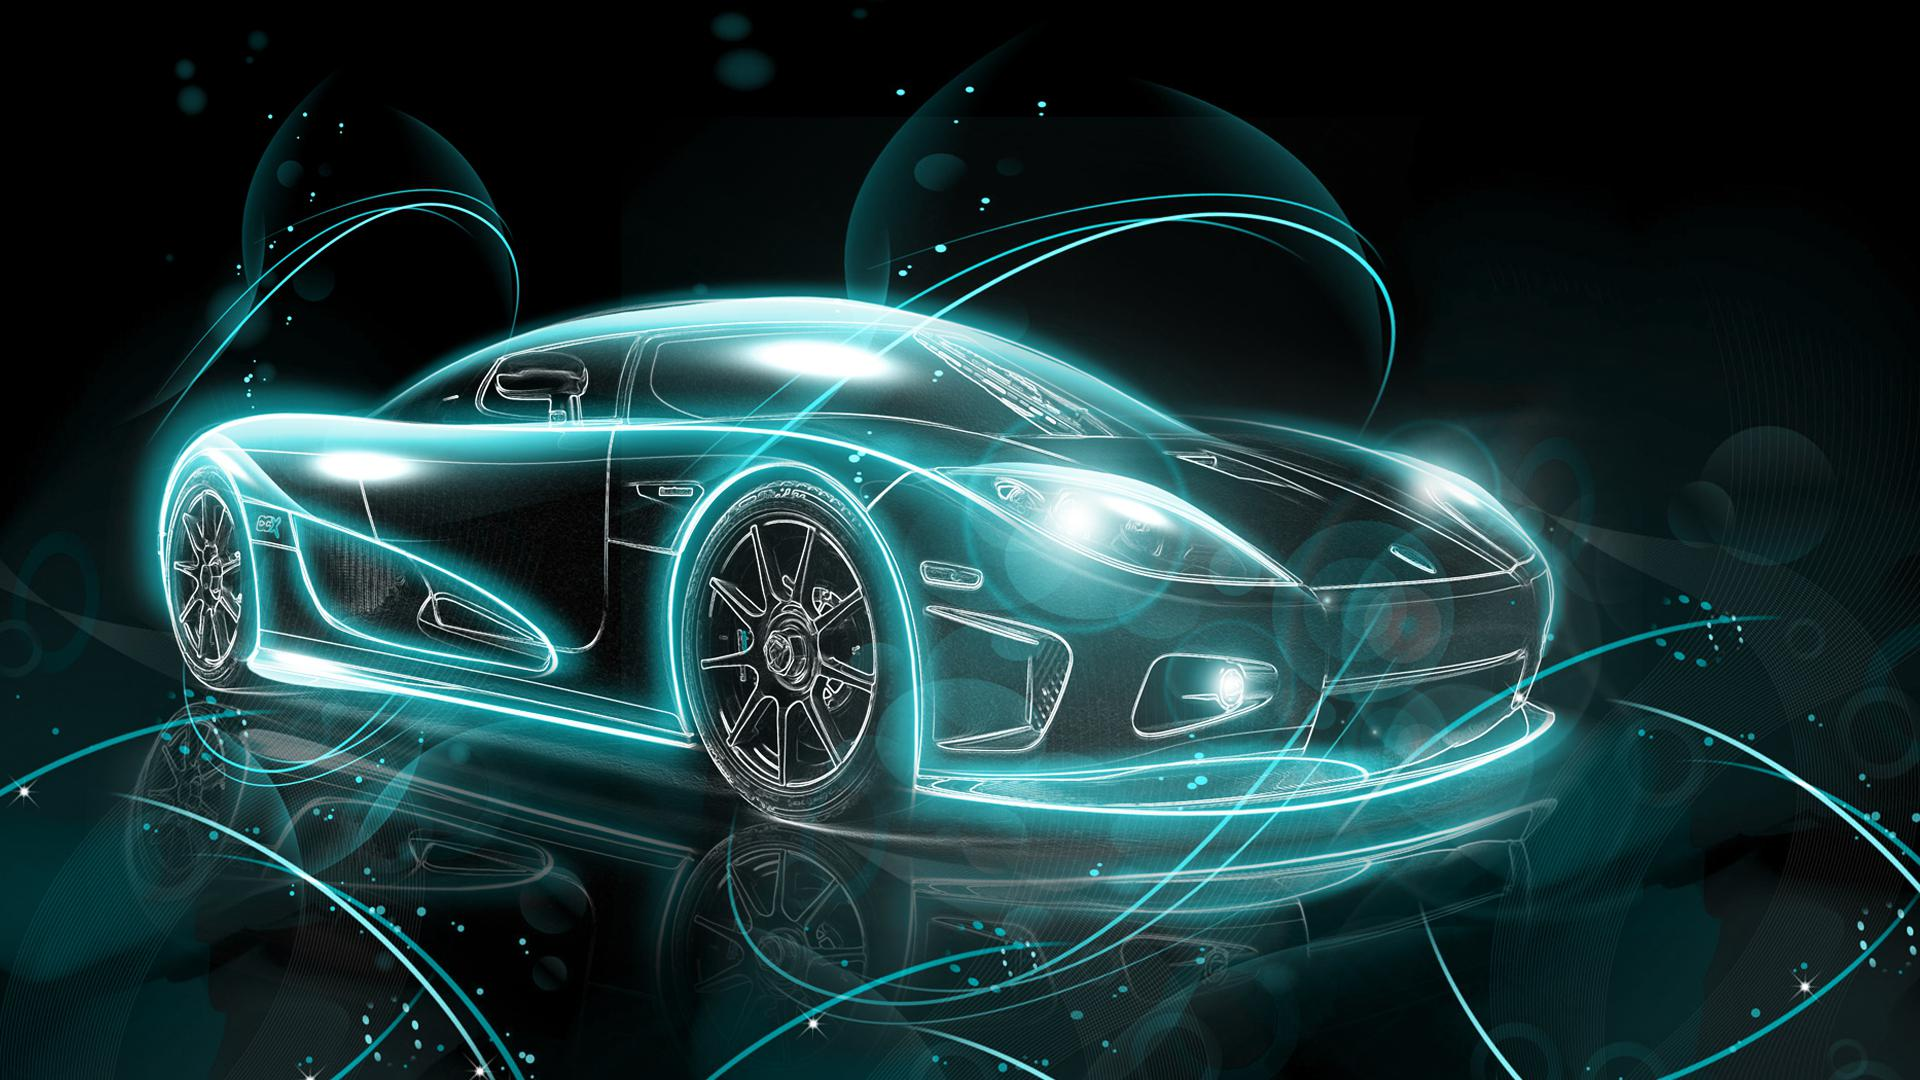 Merveilleux Car Neon Style   (#99314)   High Quality And Resolution Wallpapers On .